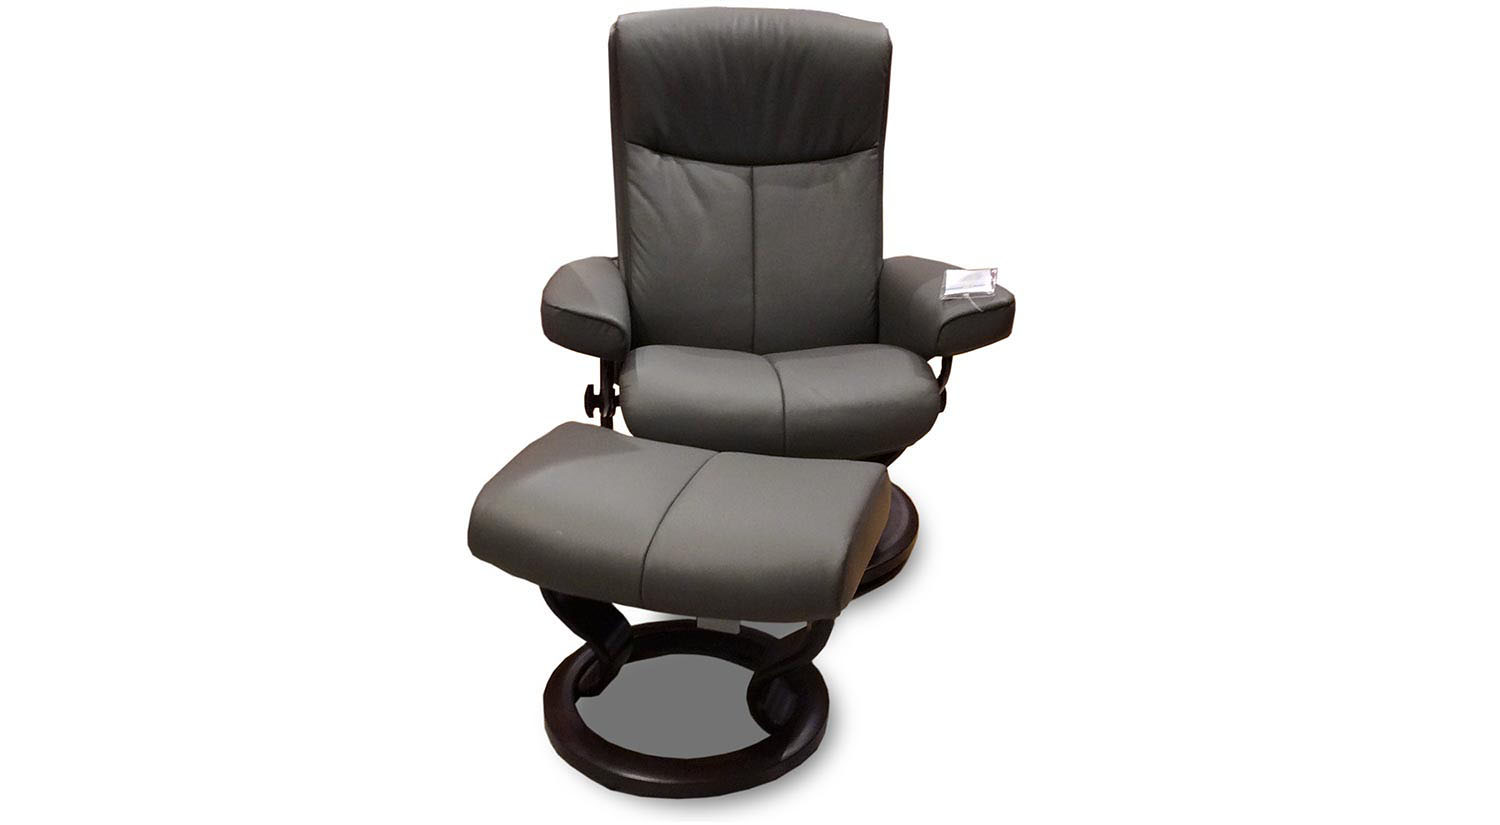 Circle Furniture Peace Stressless Chair And Ottoman In Grey